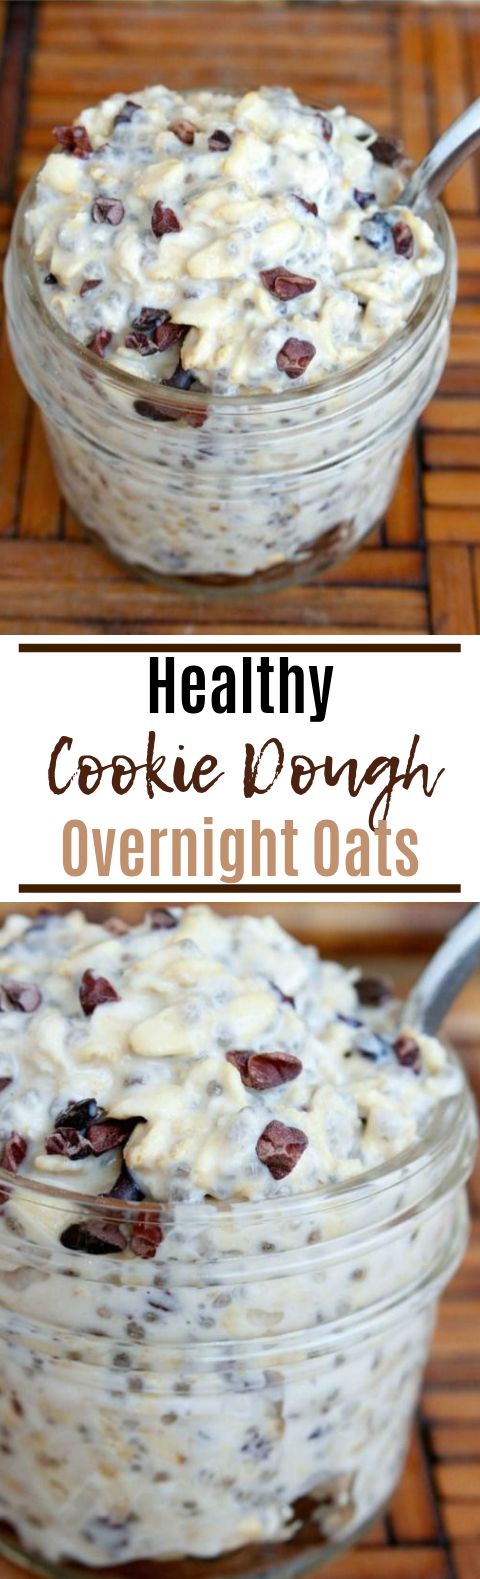 Healthy Cookie Dough Overnight Oats #glutenfree #breakfast